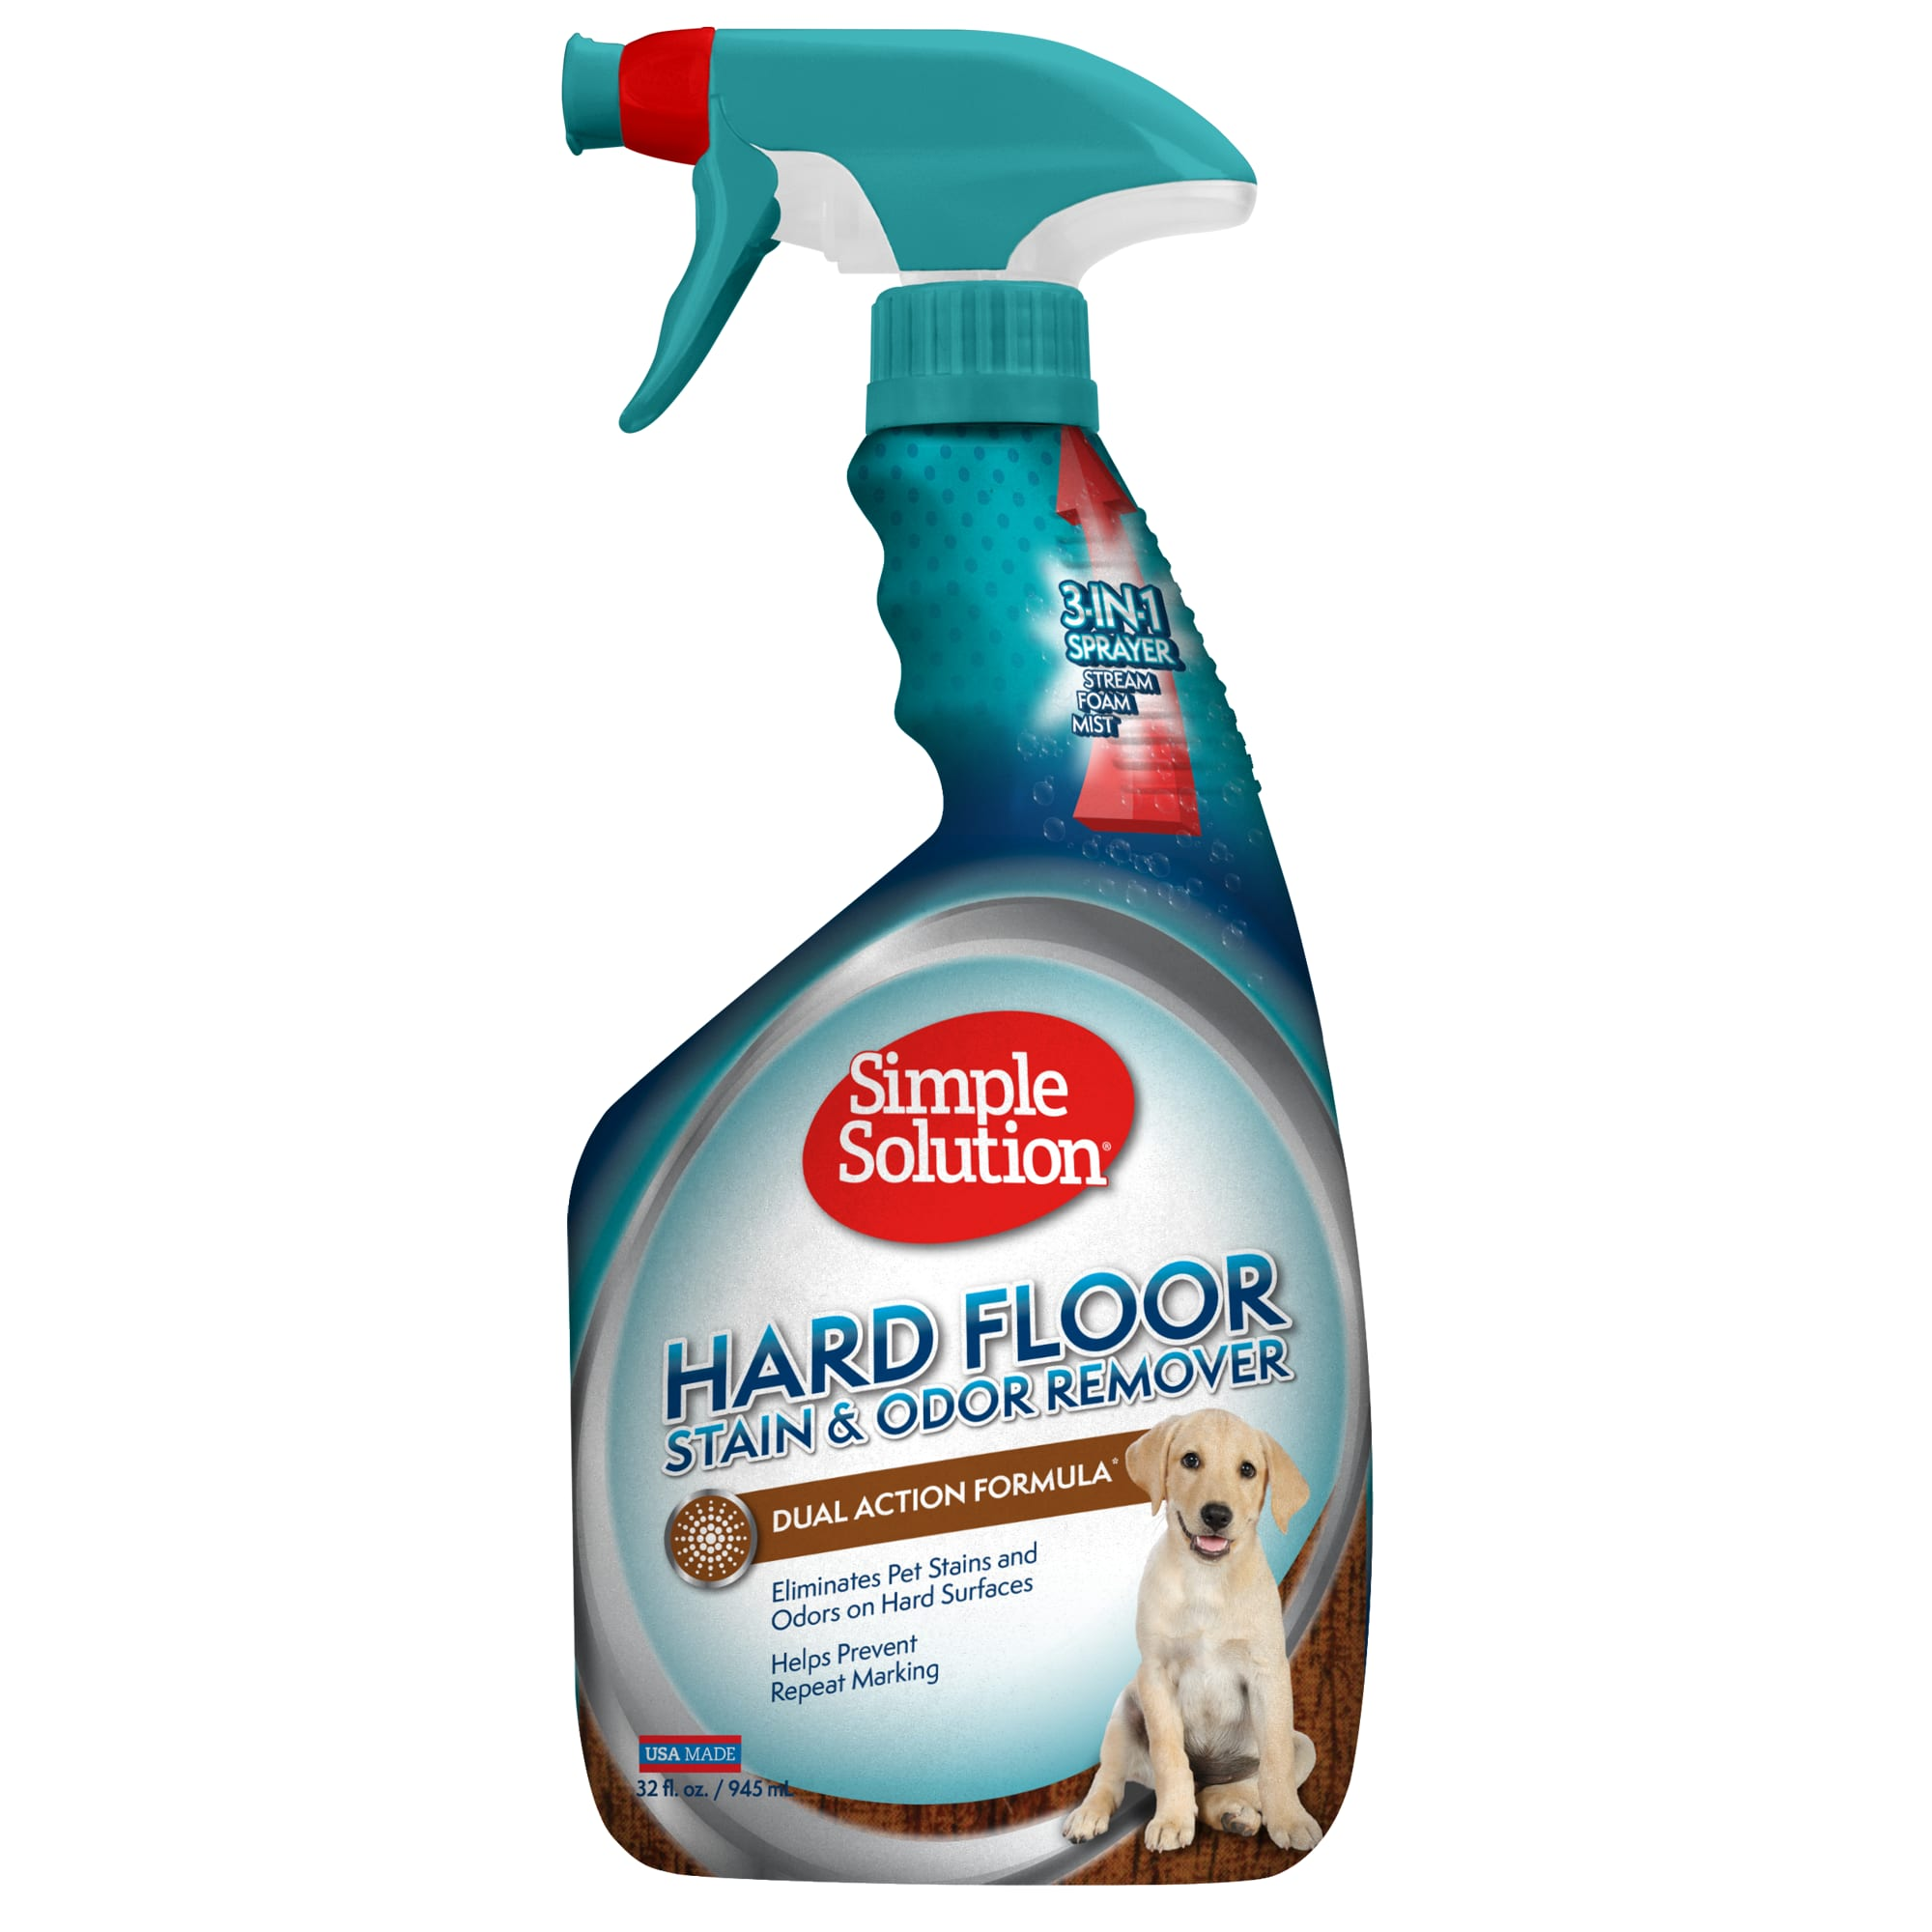 Simple Solution Hardfloor Pet Stain Odor Remover With New Multi